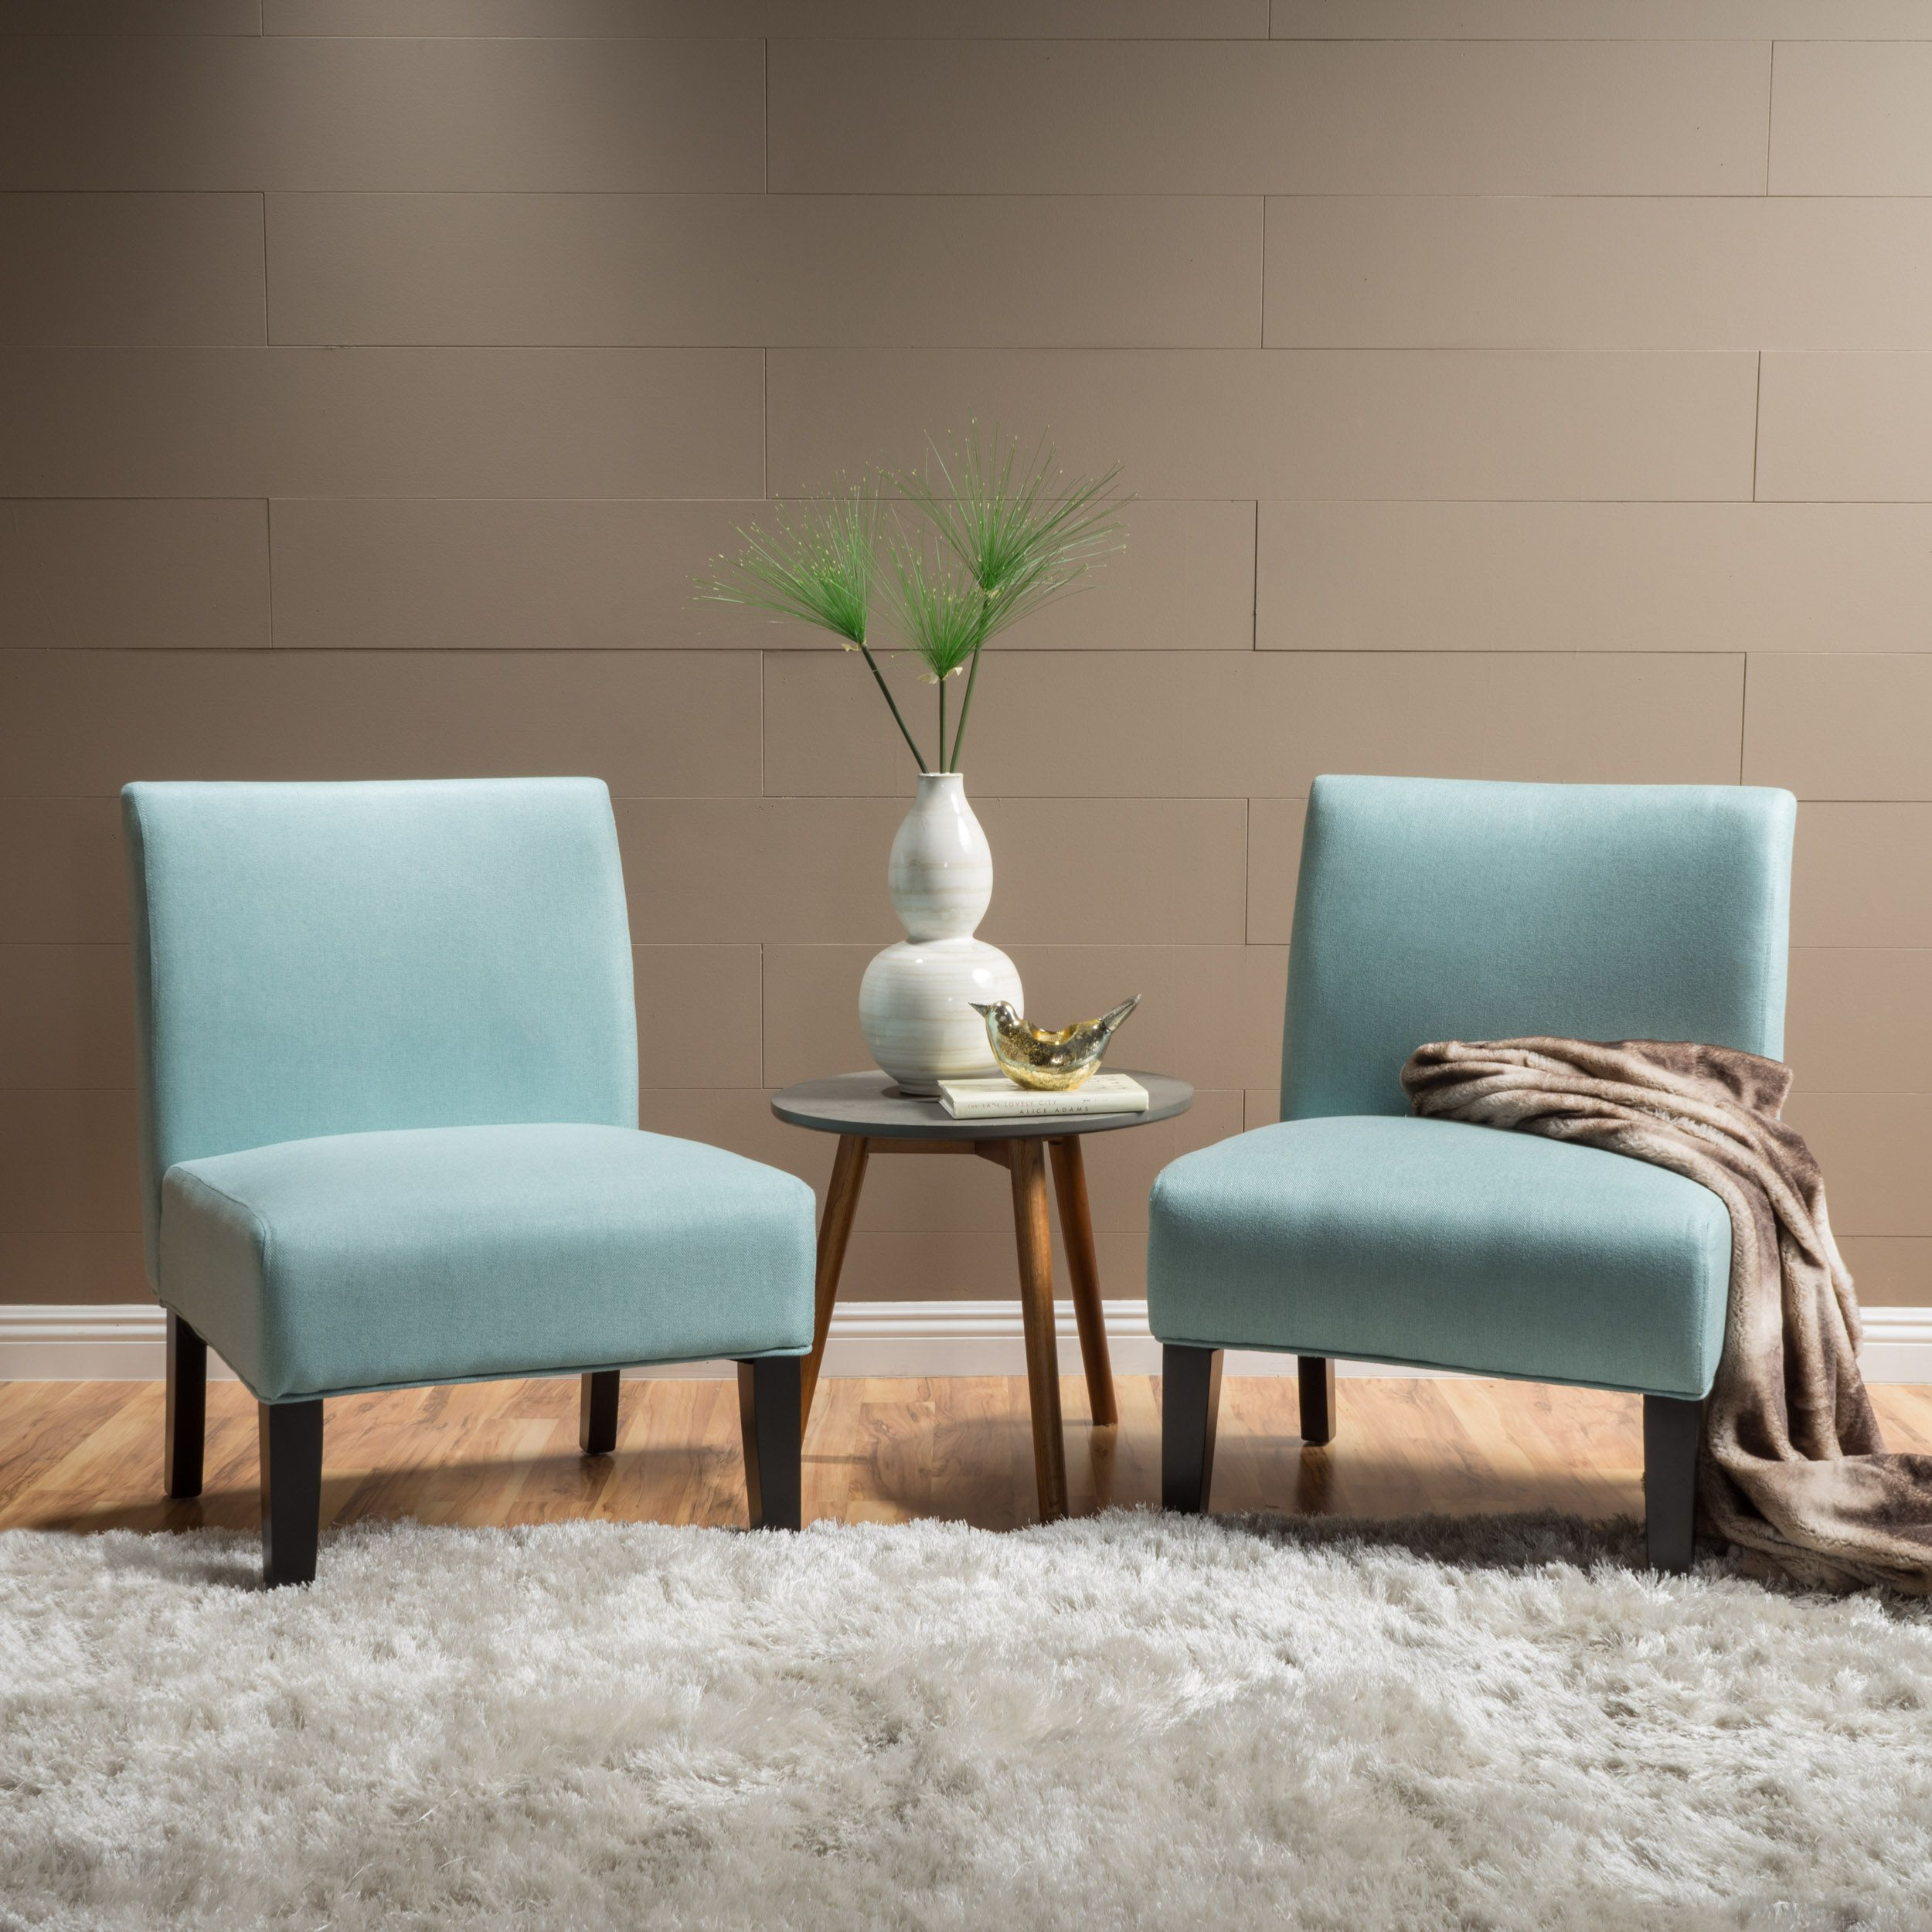 Pin On The Room #set #of #2 #accent #chairs #for #living #room